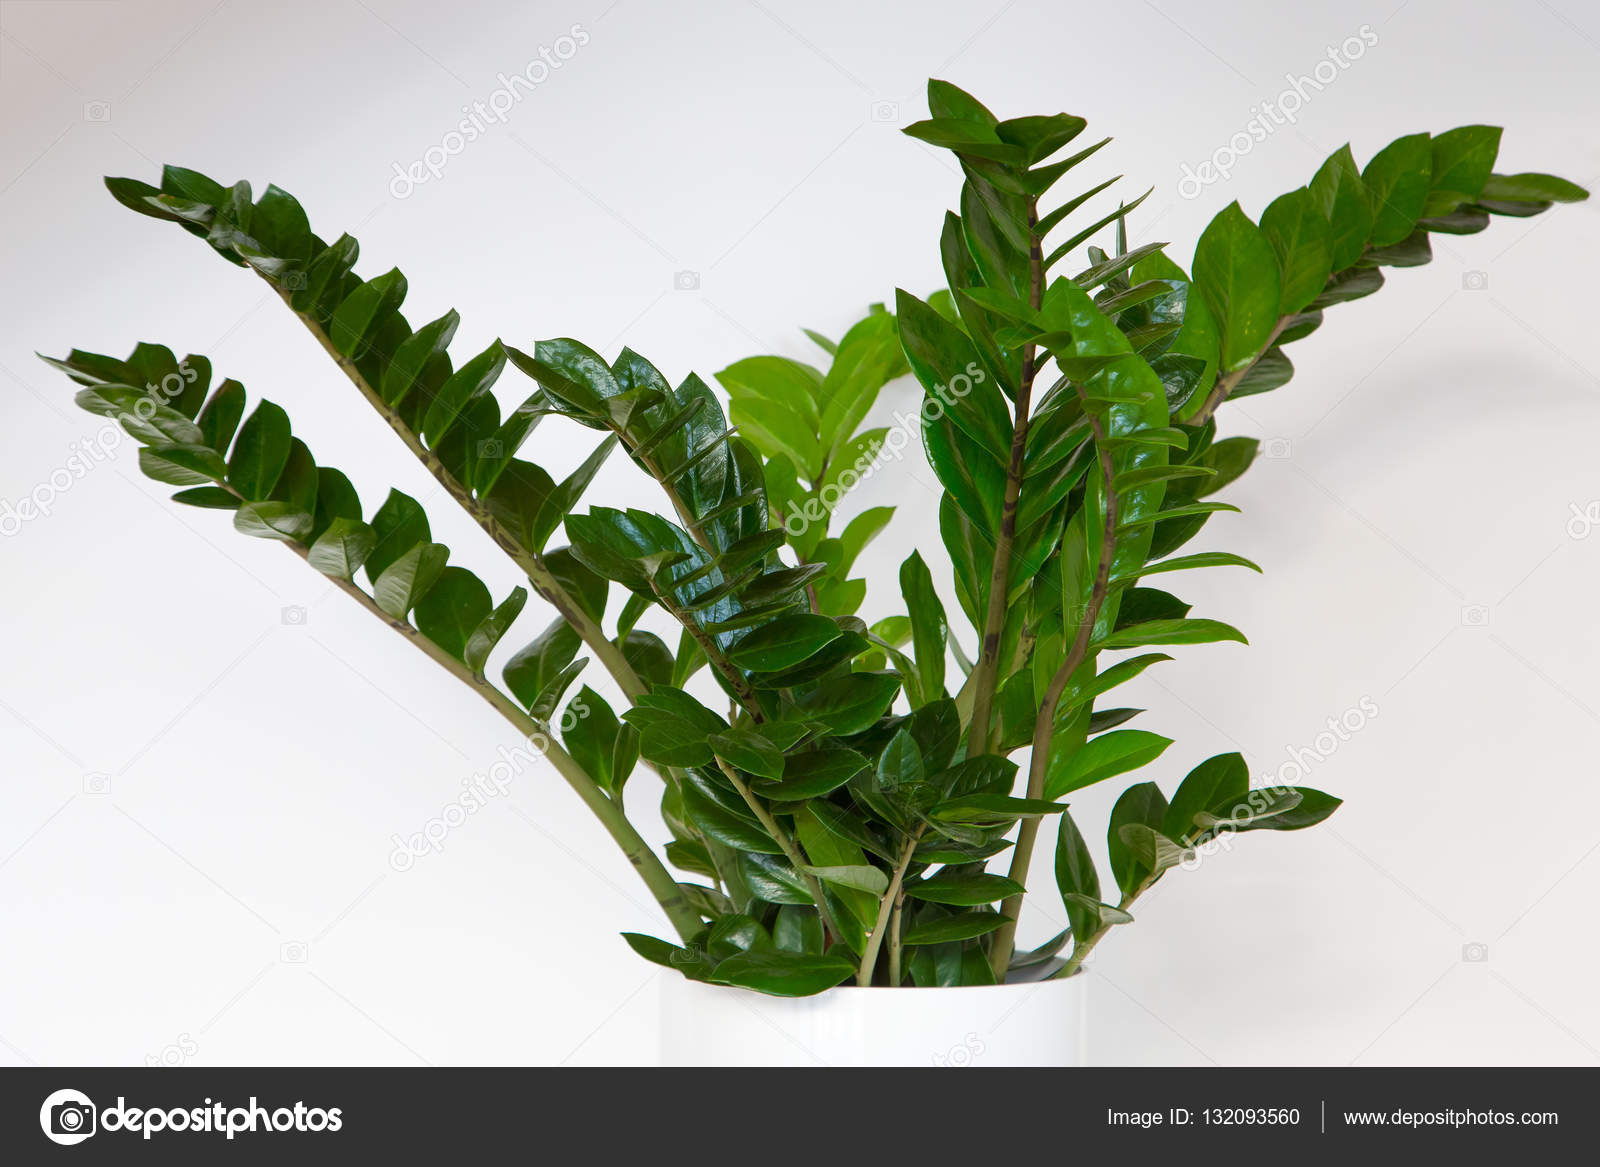 Zanzibar gem plant stock photo jrp studio 132093560 for Plante zanzibar